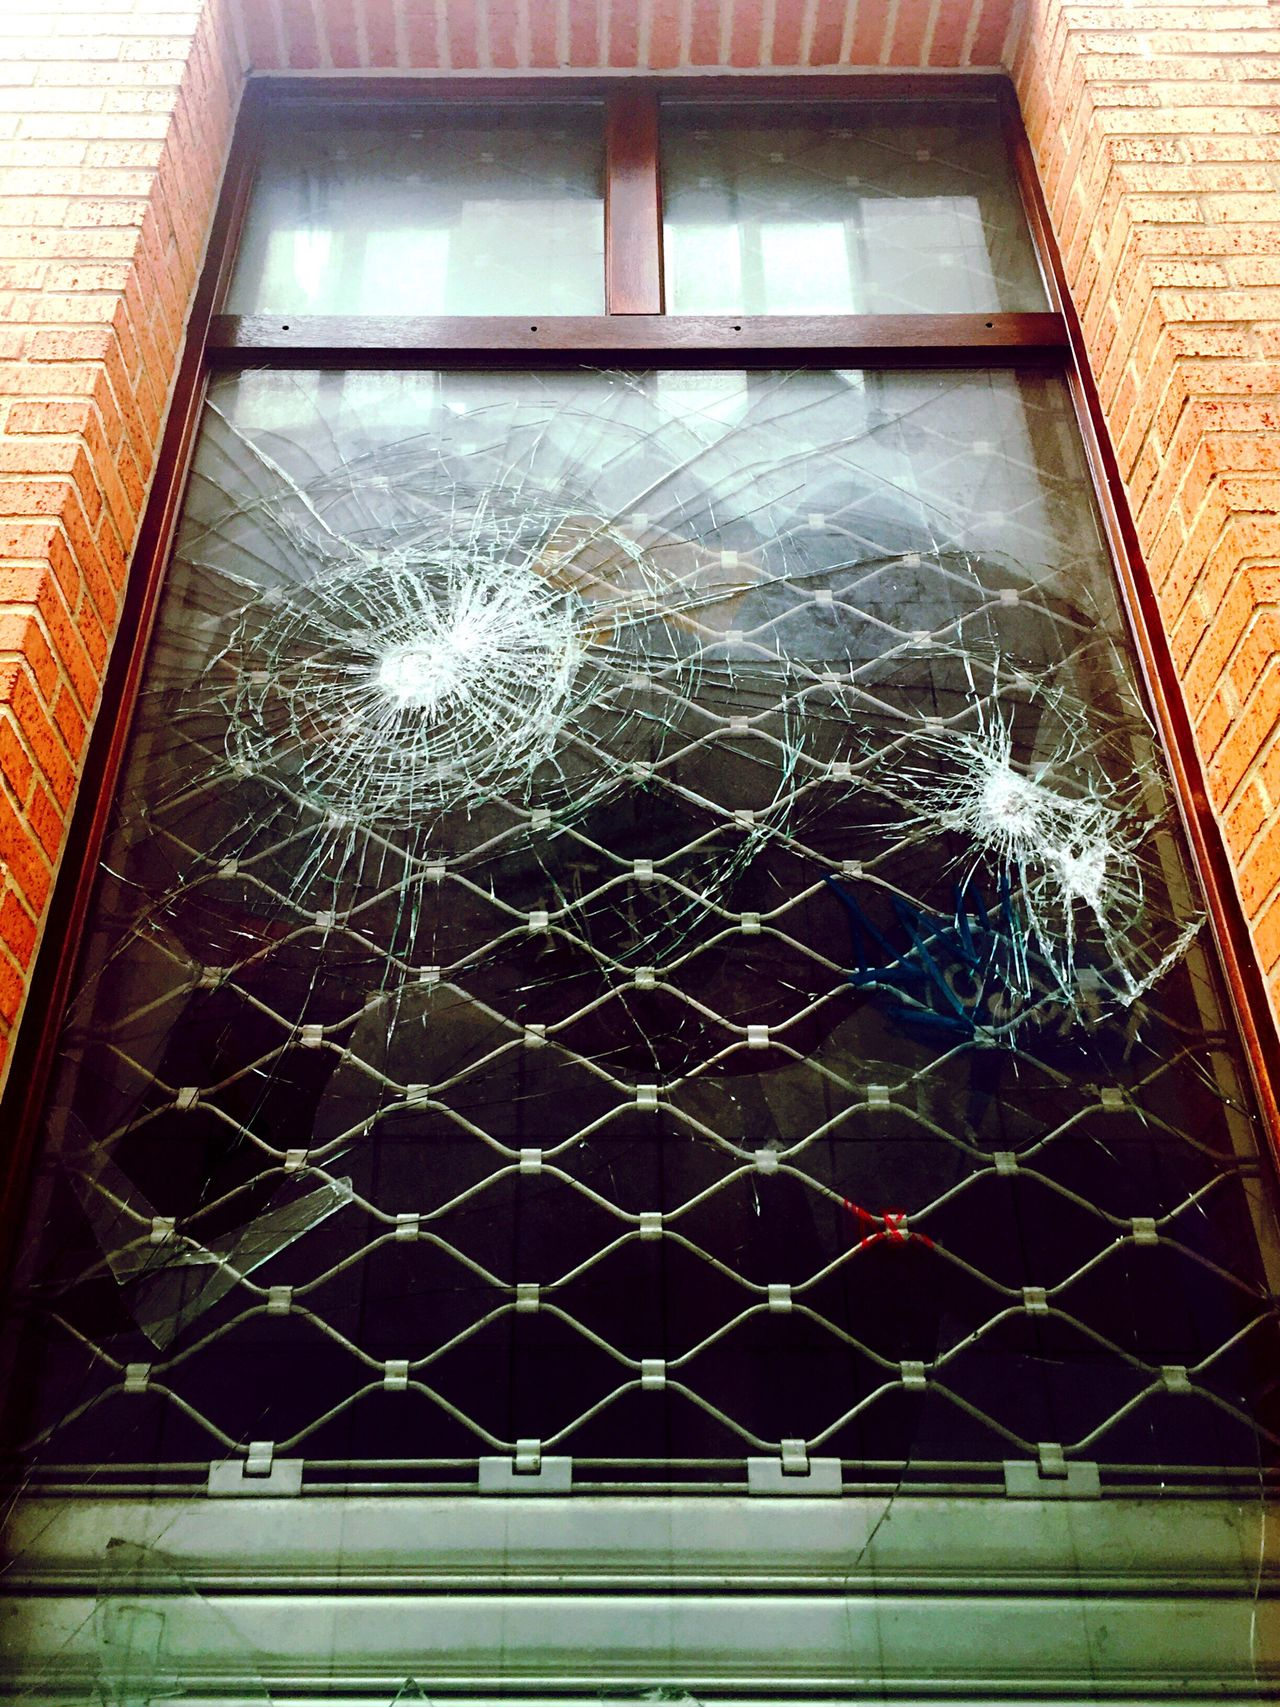 Vandalism Window Glass Broken Glass Threat Danger Attack Street